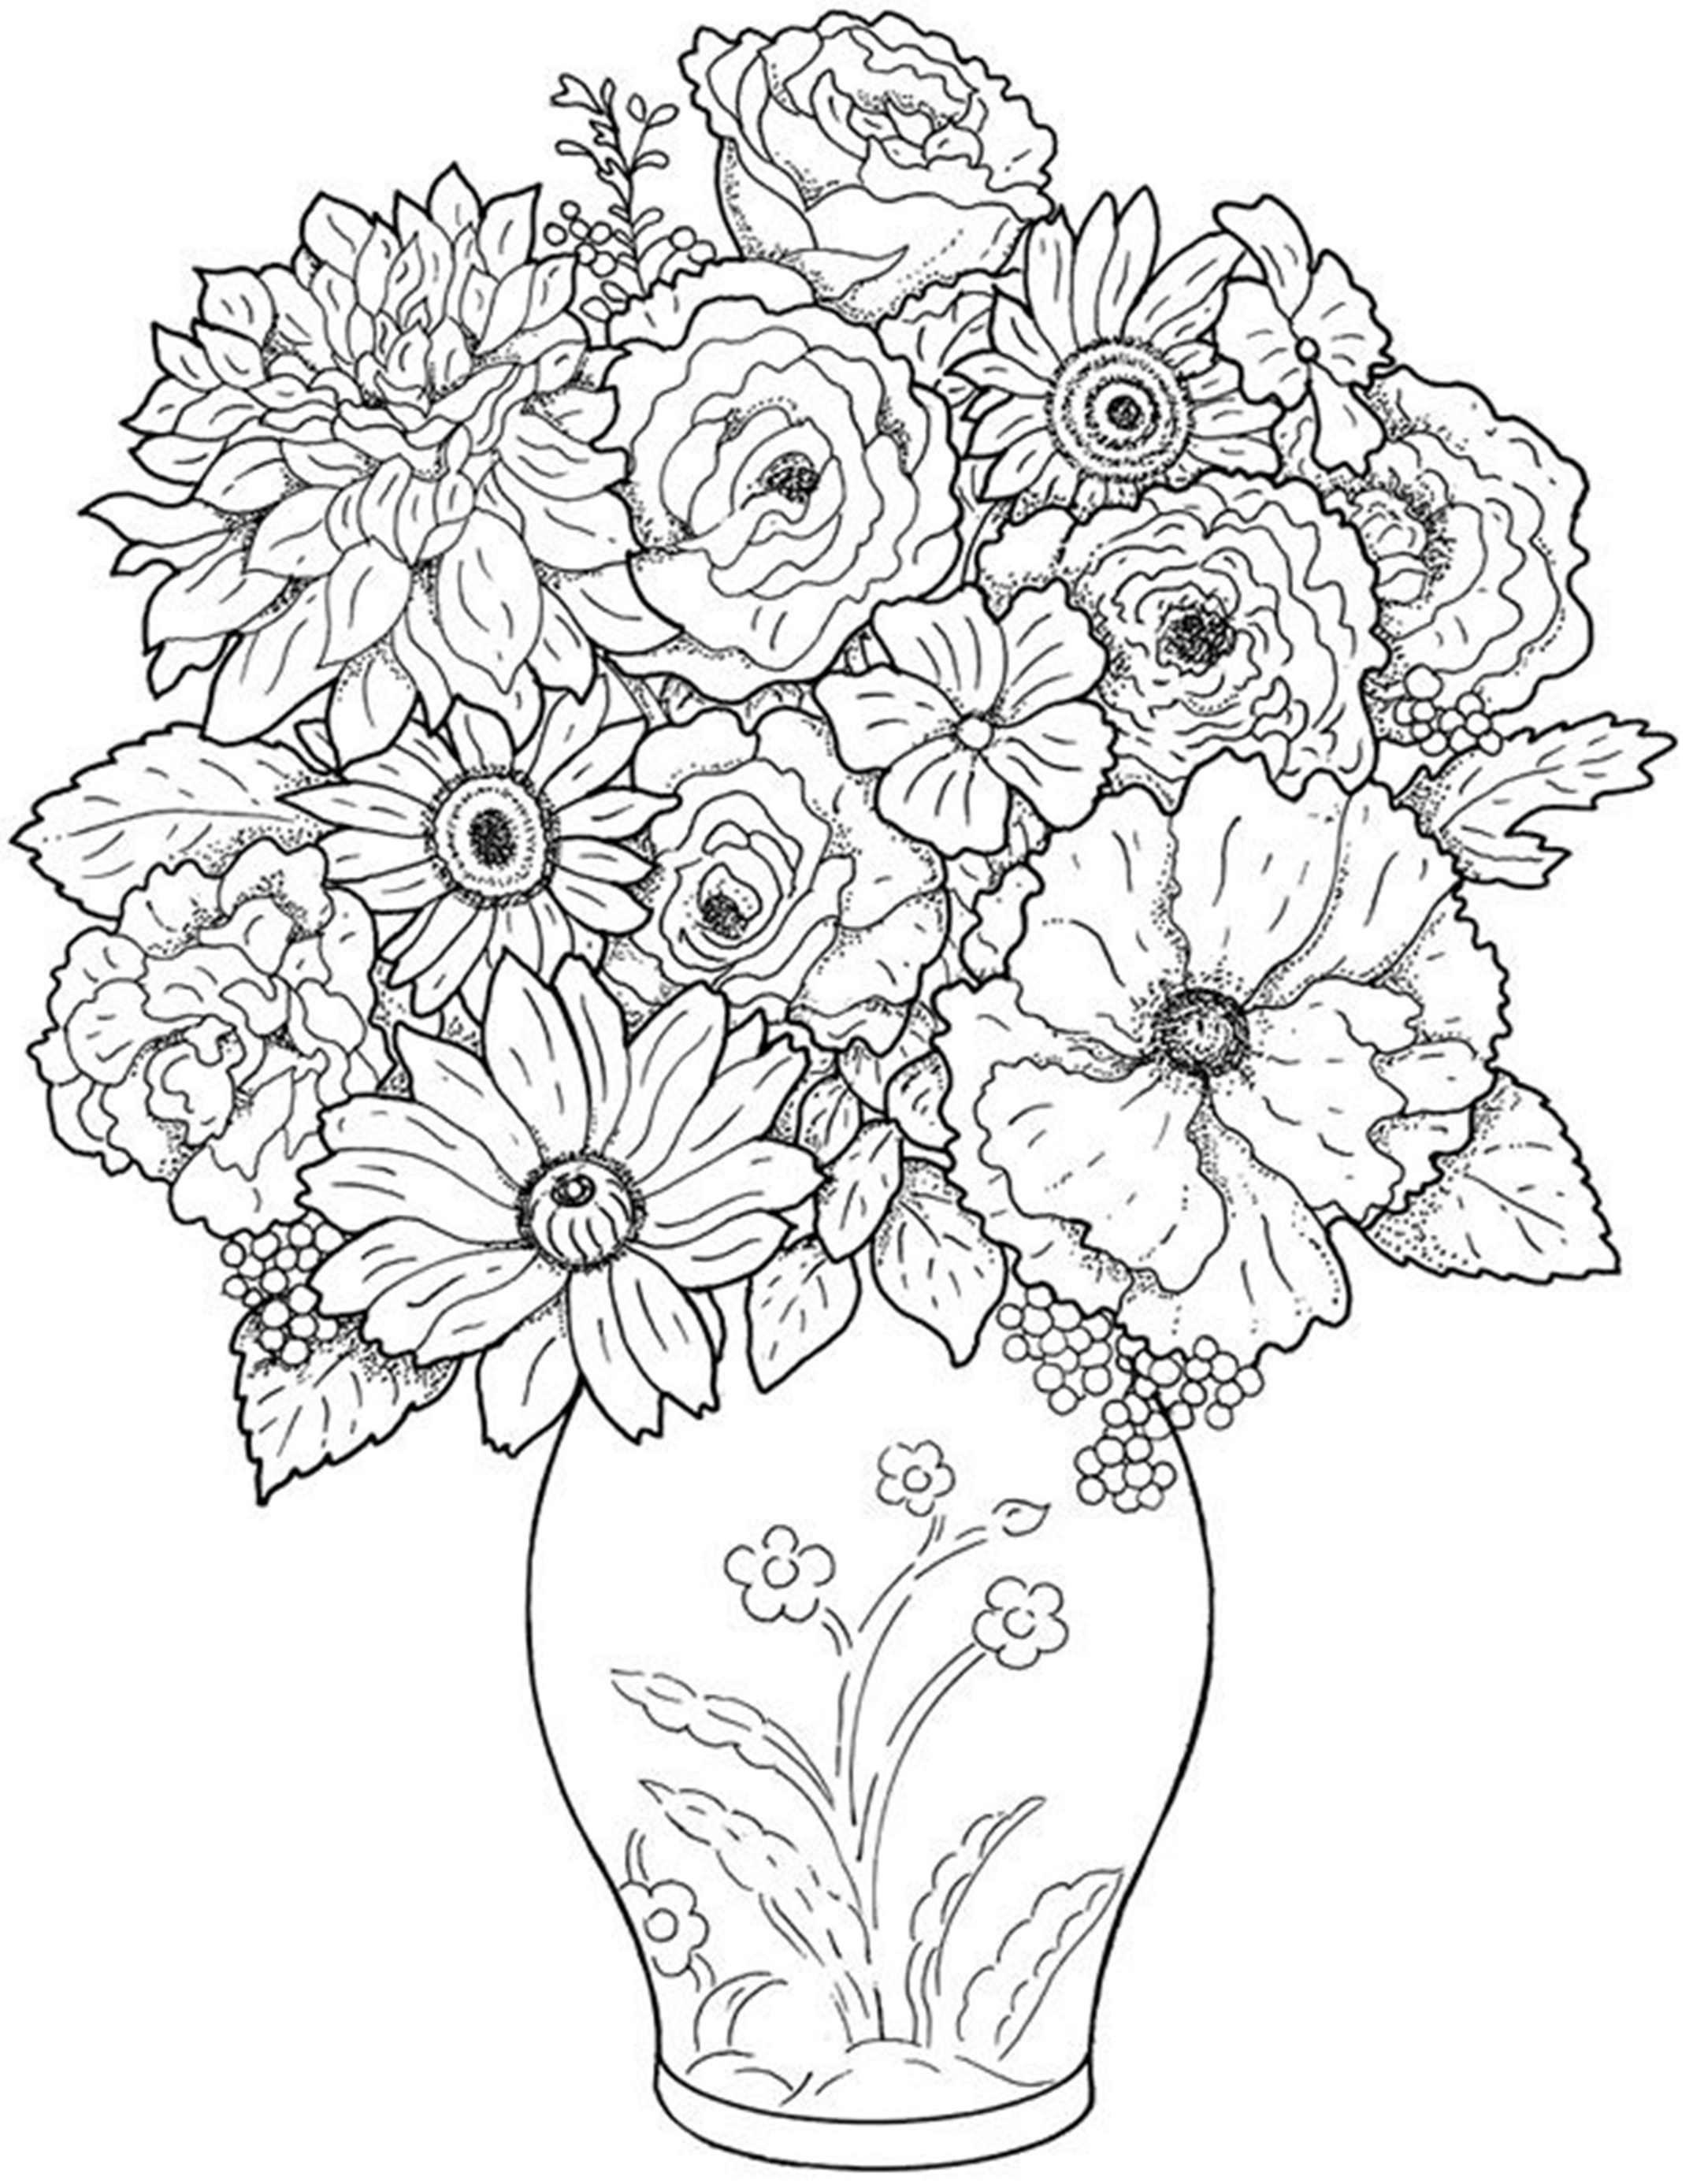 Free printable photos of flowers svg black and white download Free Printable Flower Coloring Pages For Kids - Best Coloring ... svg black and white download